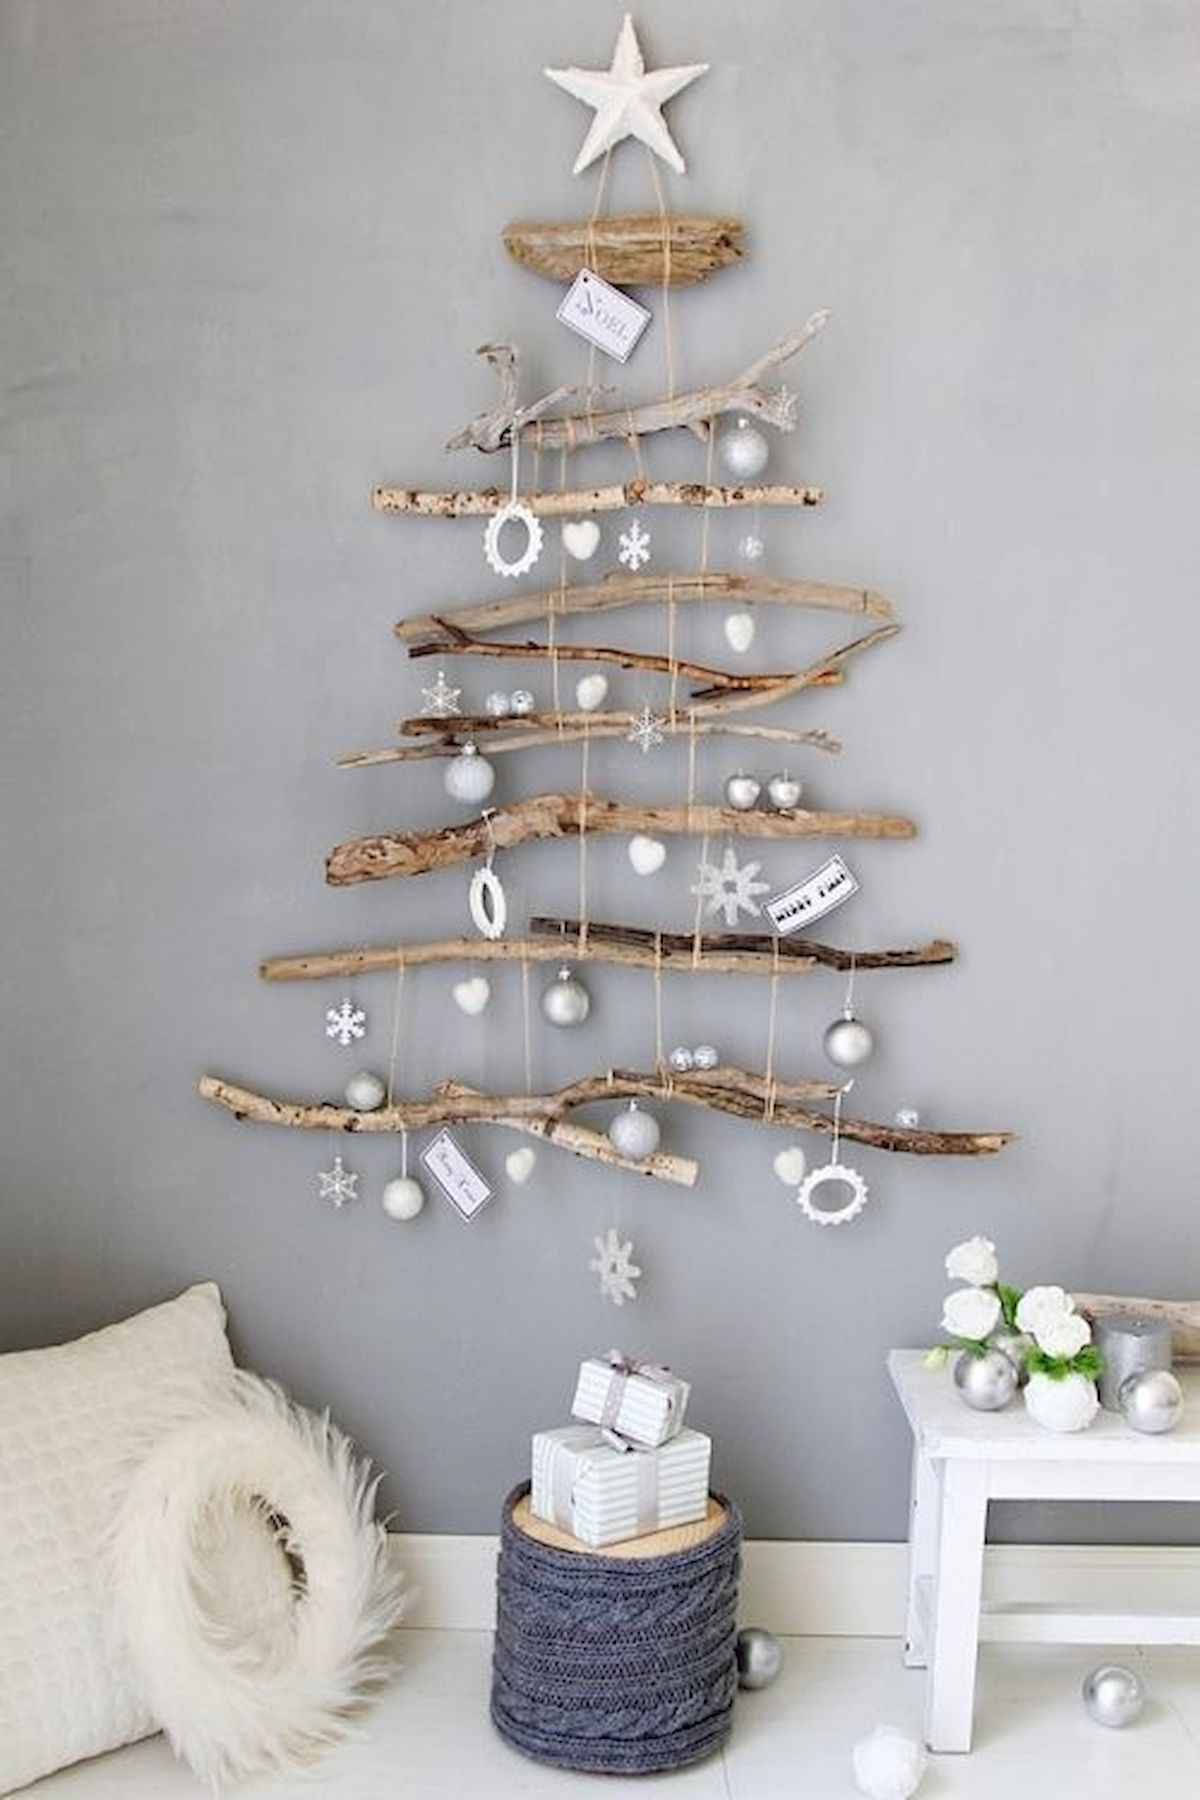 Easy DIY Christmas crafts for adults: Rustic Hanging Christmas Tree Wall Art